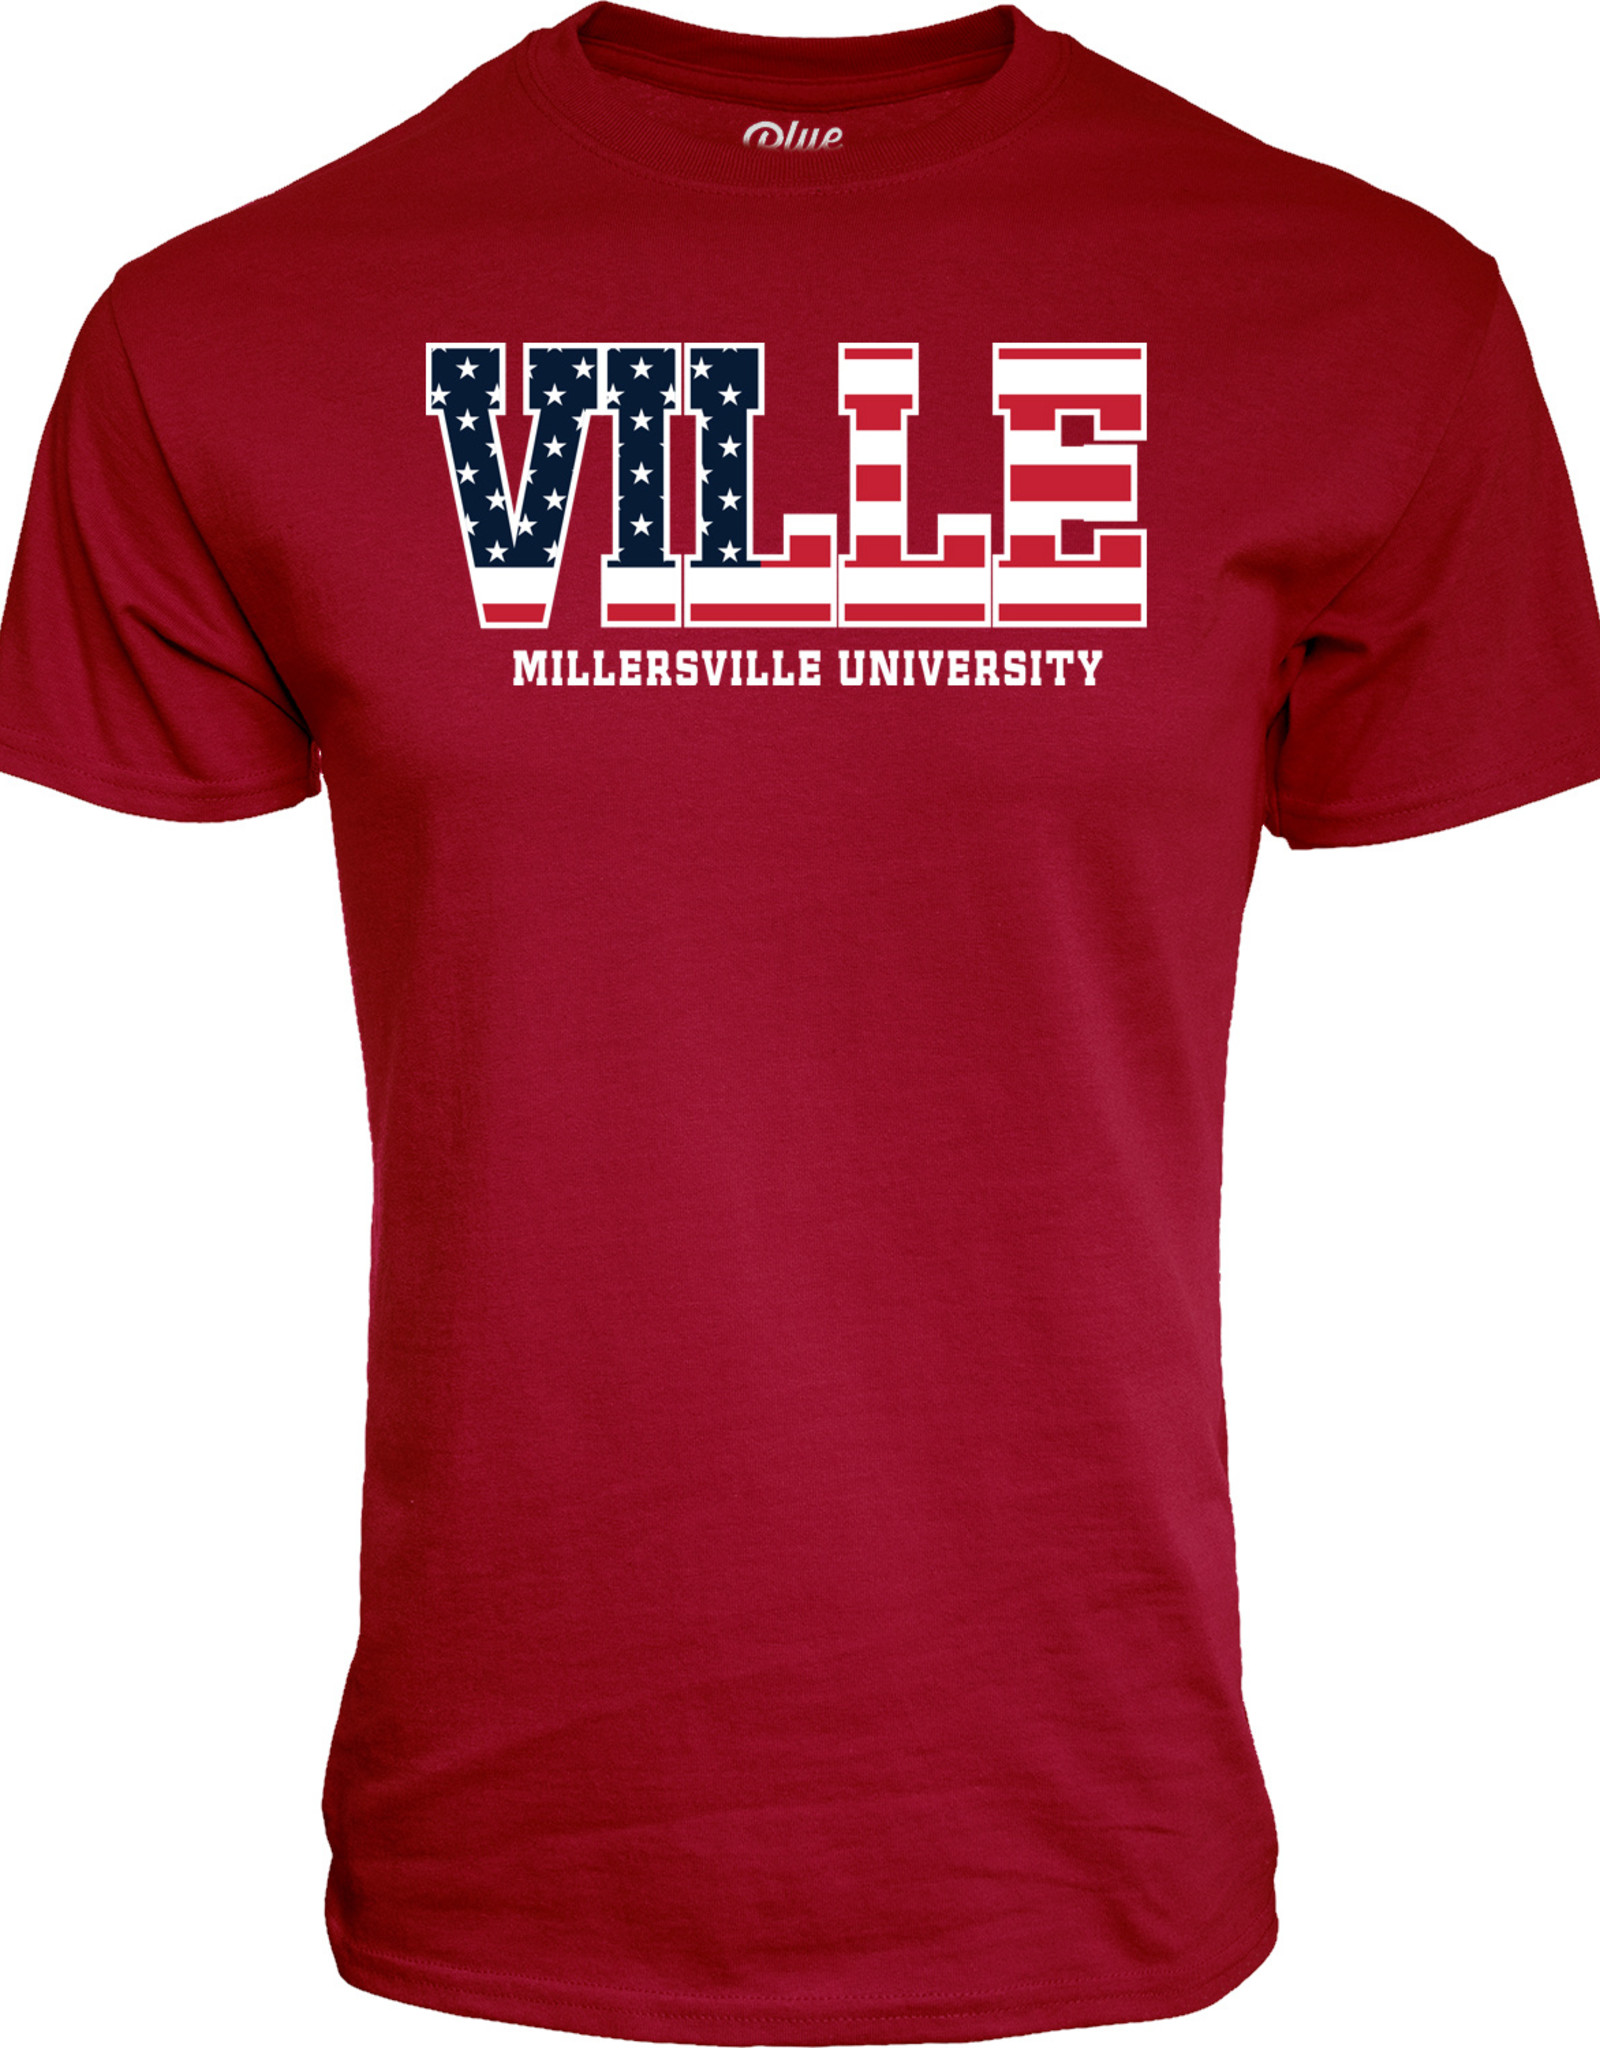 Stars and Stripes Tee (Various Colors)